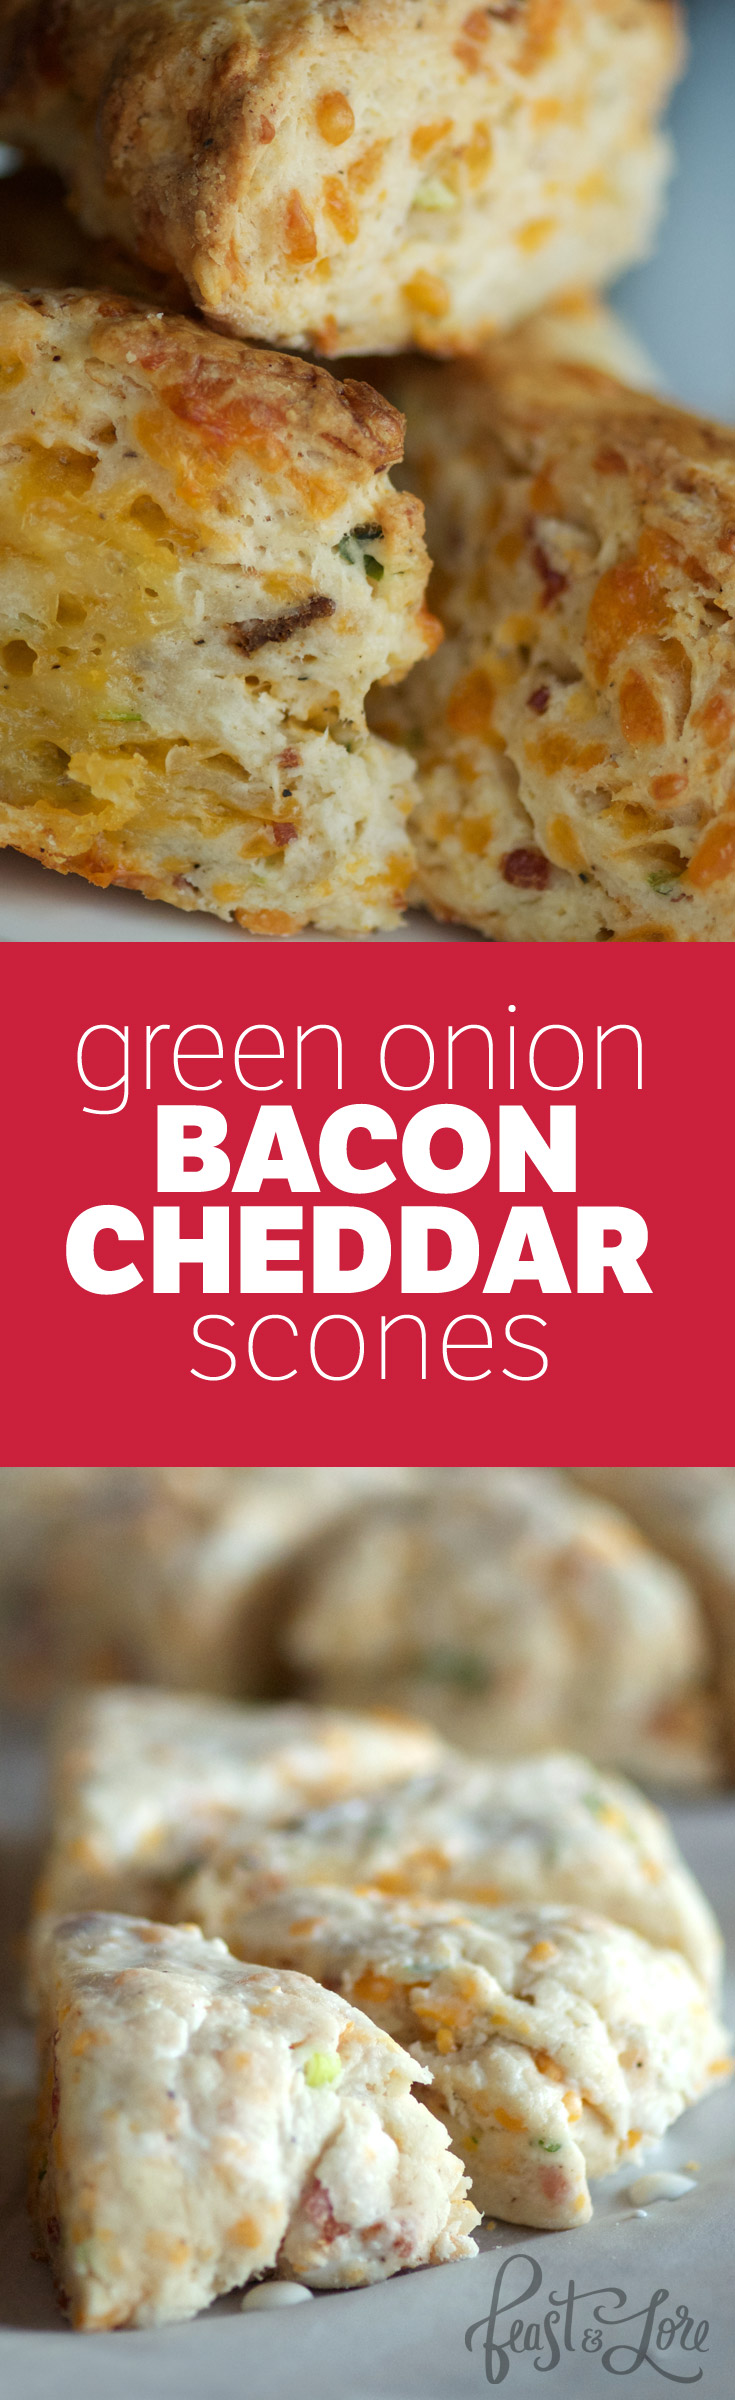 Savoury scones with melted cheese and bacon